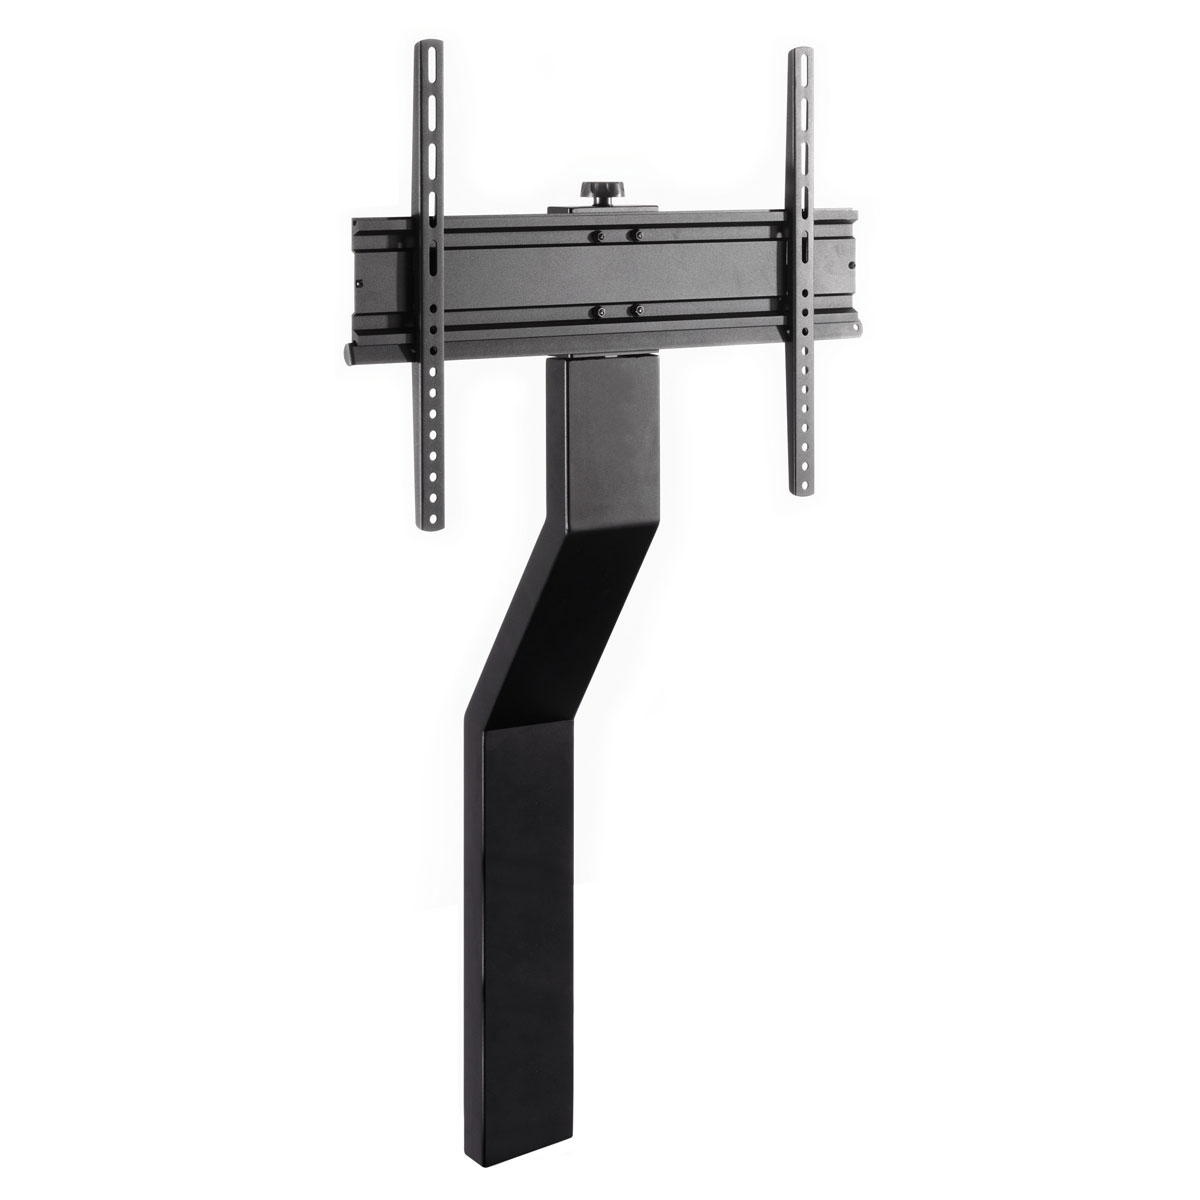 Erard bilt colonne additionelle support mural tv erard - Support tv mural samsung ...